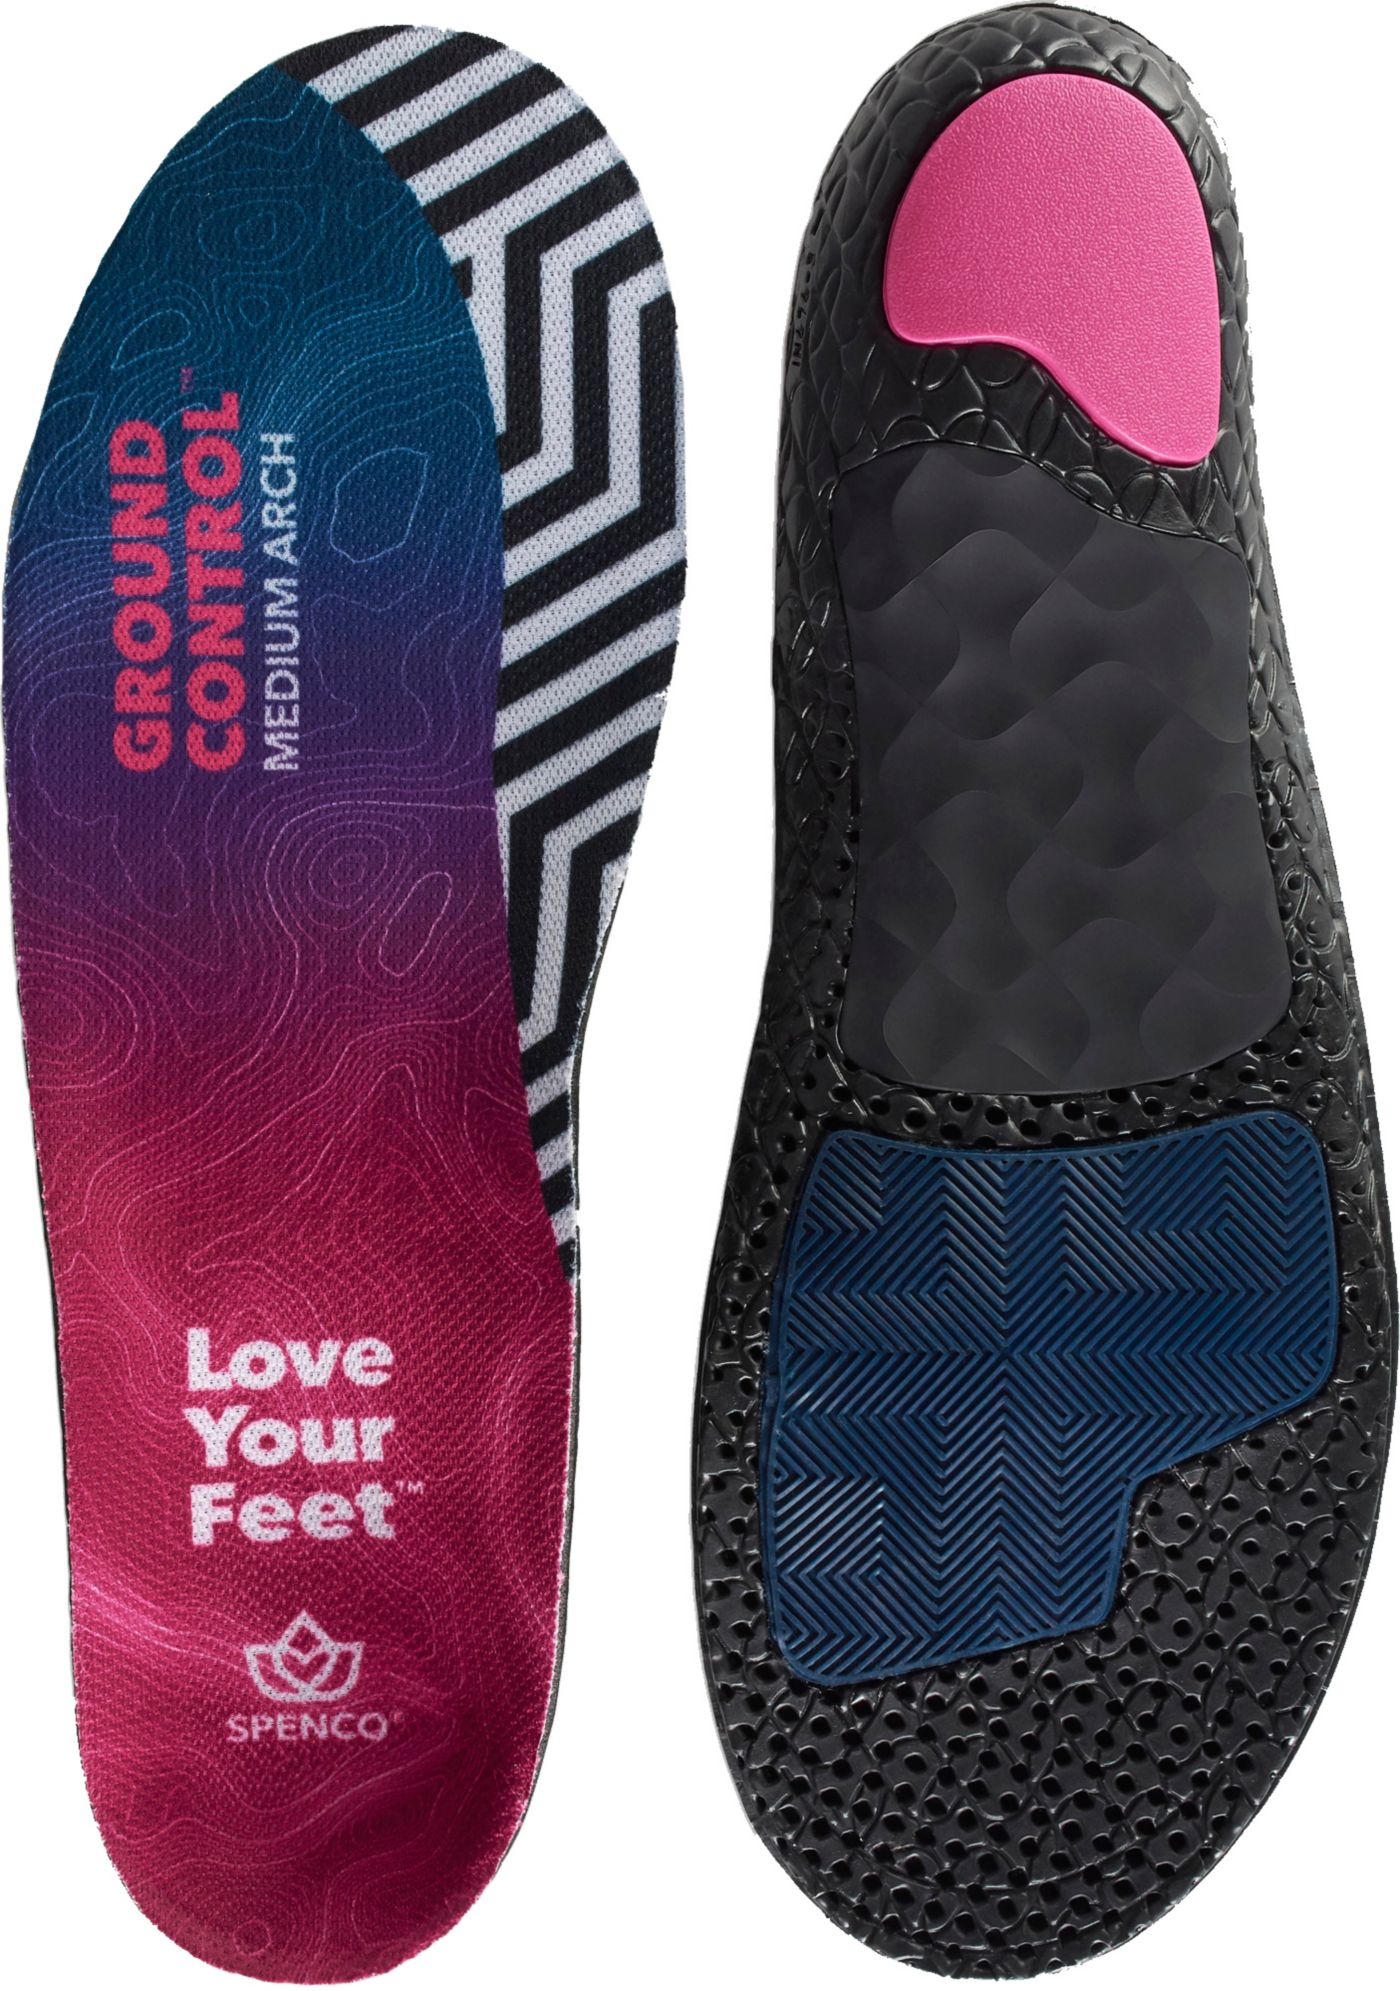 Spenco Ground Control High Arch Insoles